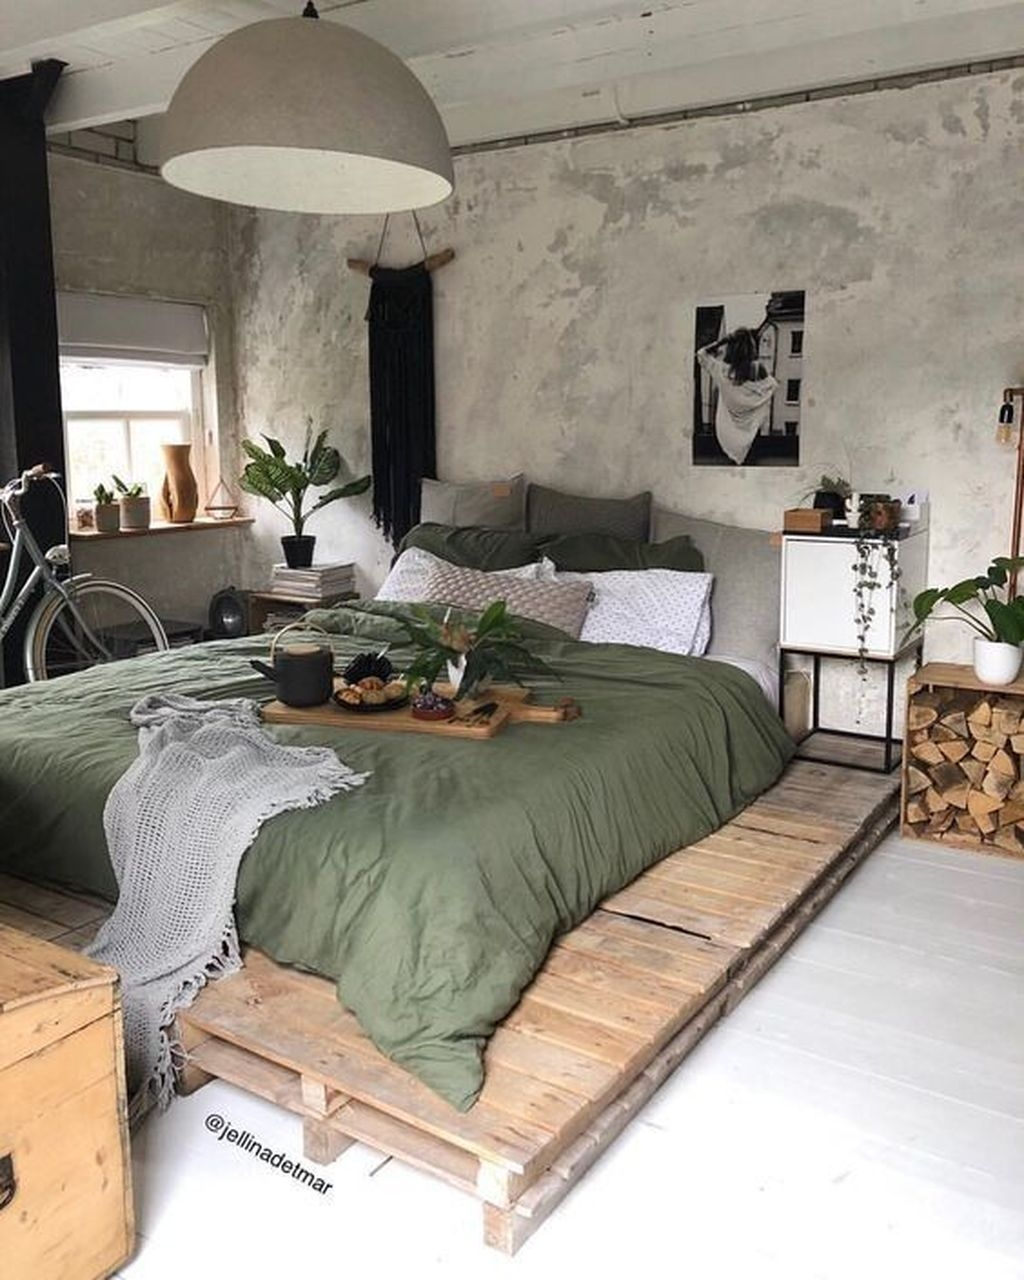 Simple Diy Pallet Furniture Ideas To Inspire You05